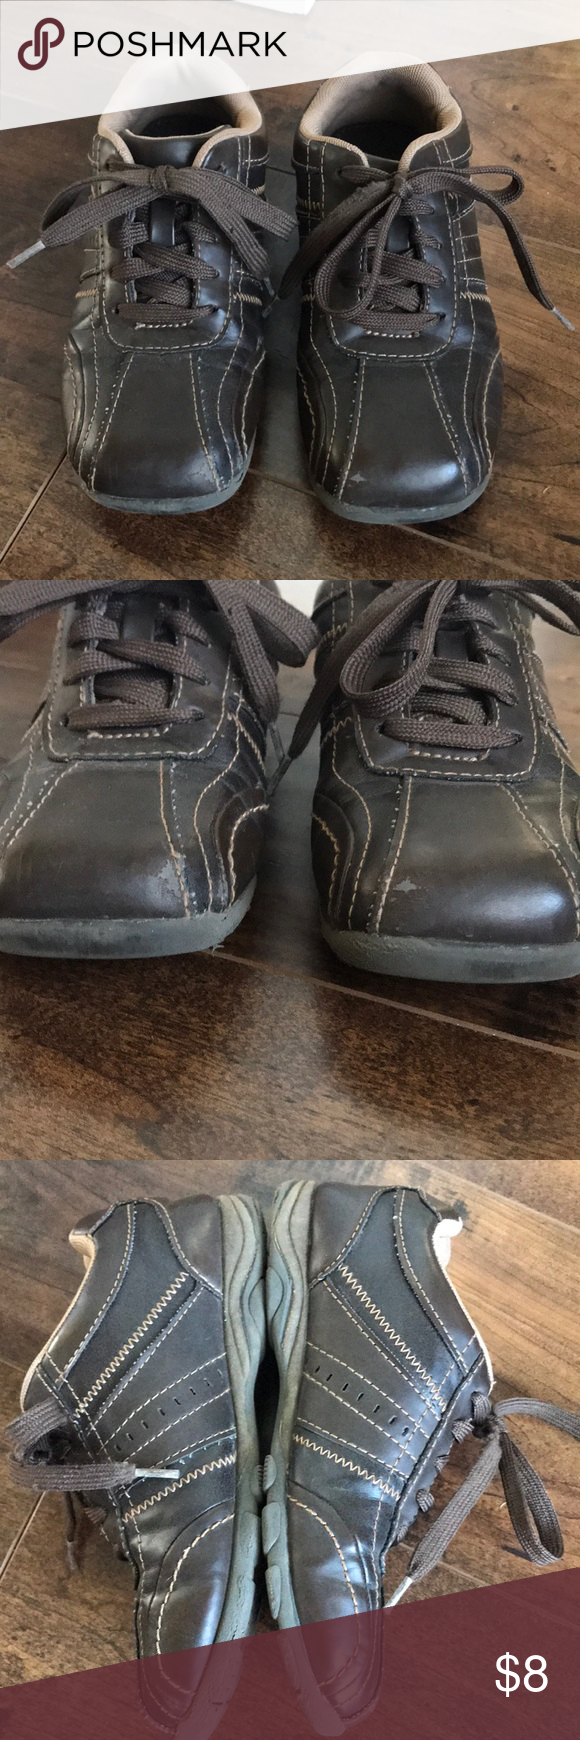 f48c12ab13 Boys brown lace-up shoes Good used condition. Minor scuffing at toes. One  shoe lace is a little rough on edge but still very usable.